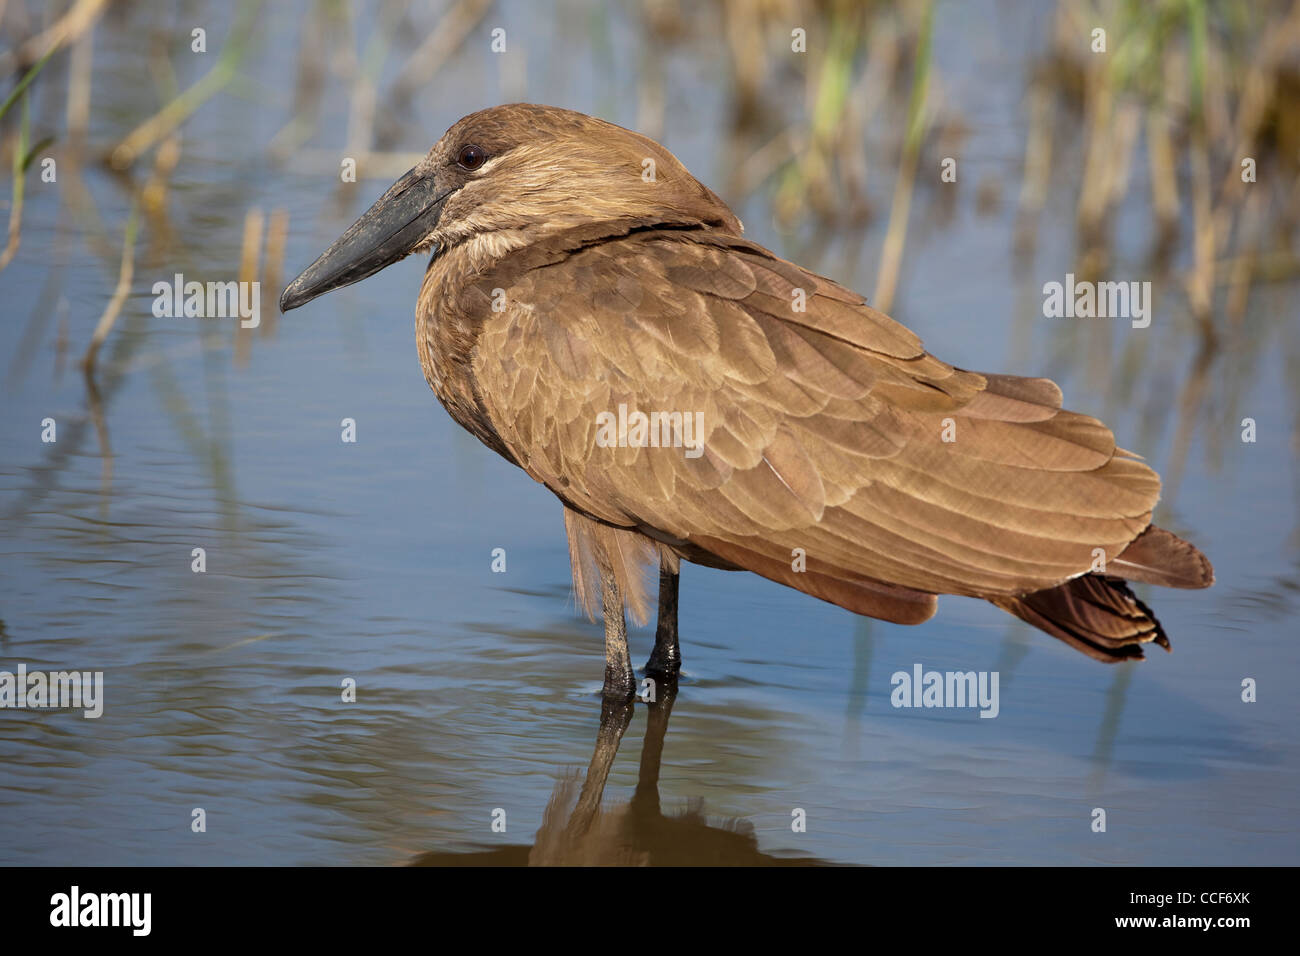 Hamerkop (Scopus umbretta). Standing and resting in shallow water. Lake Ziway. Ethiopia. Stock Photo